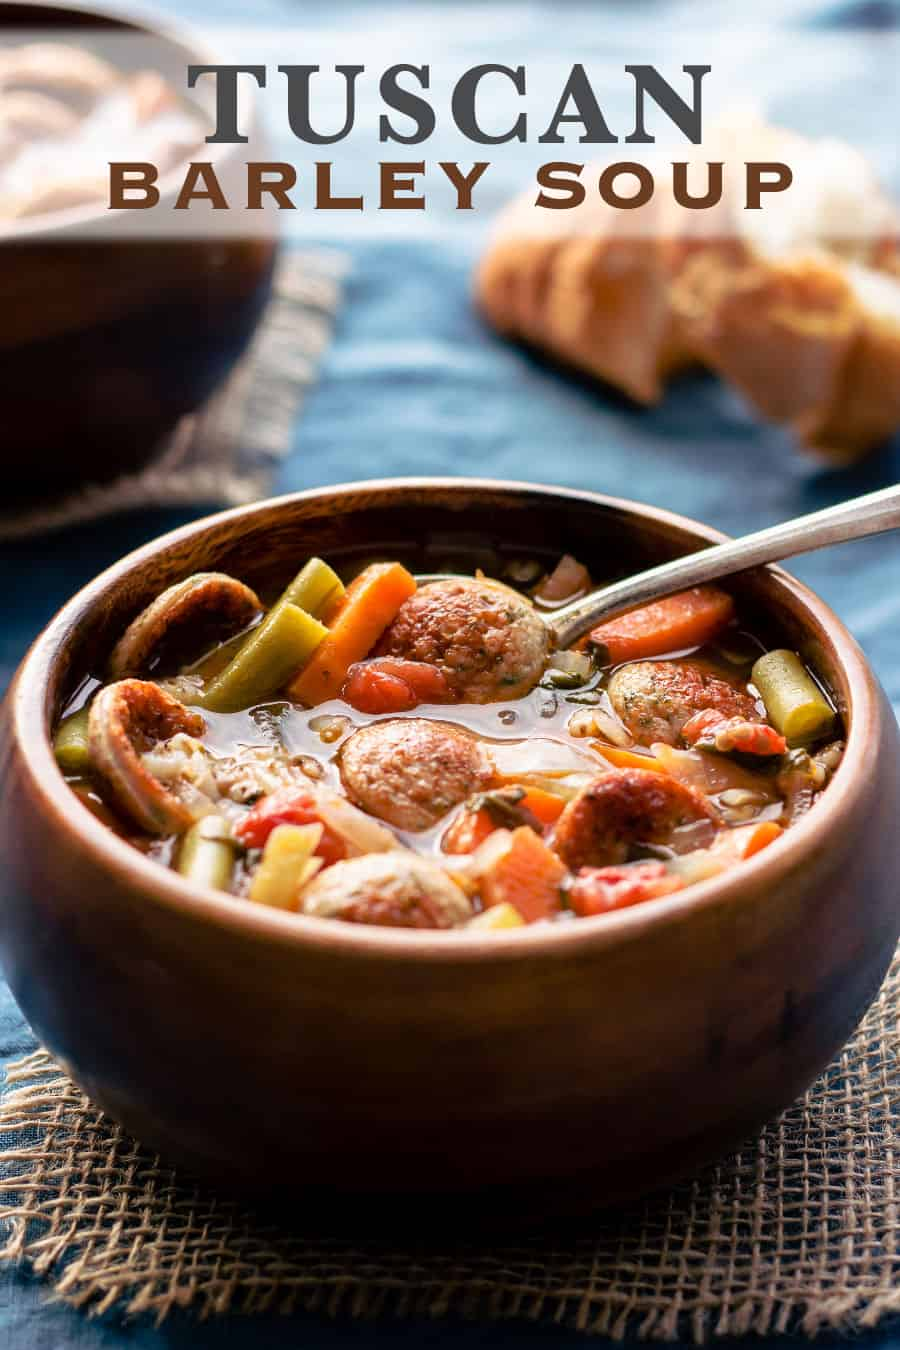 Delicious and healthy Tuscan Barley Soup